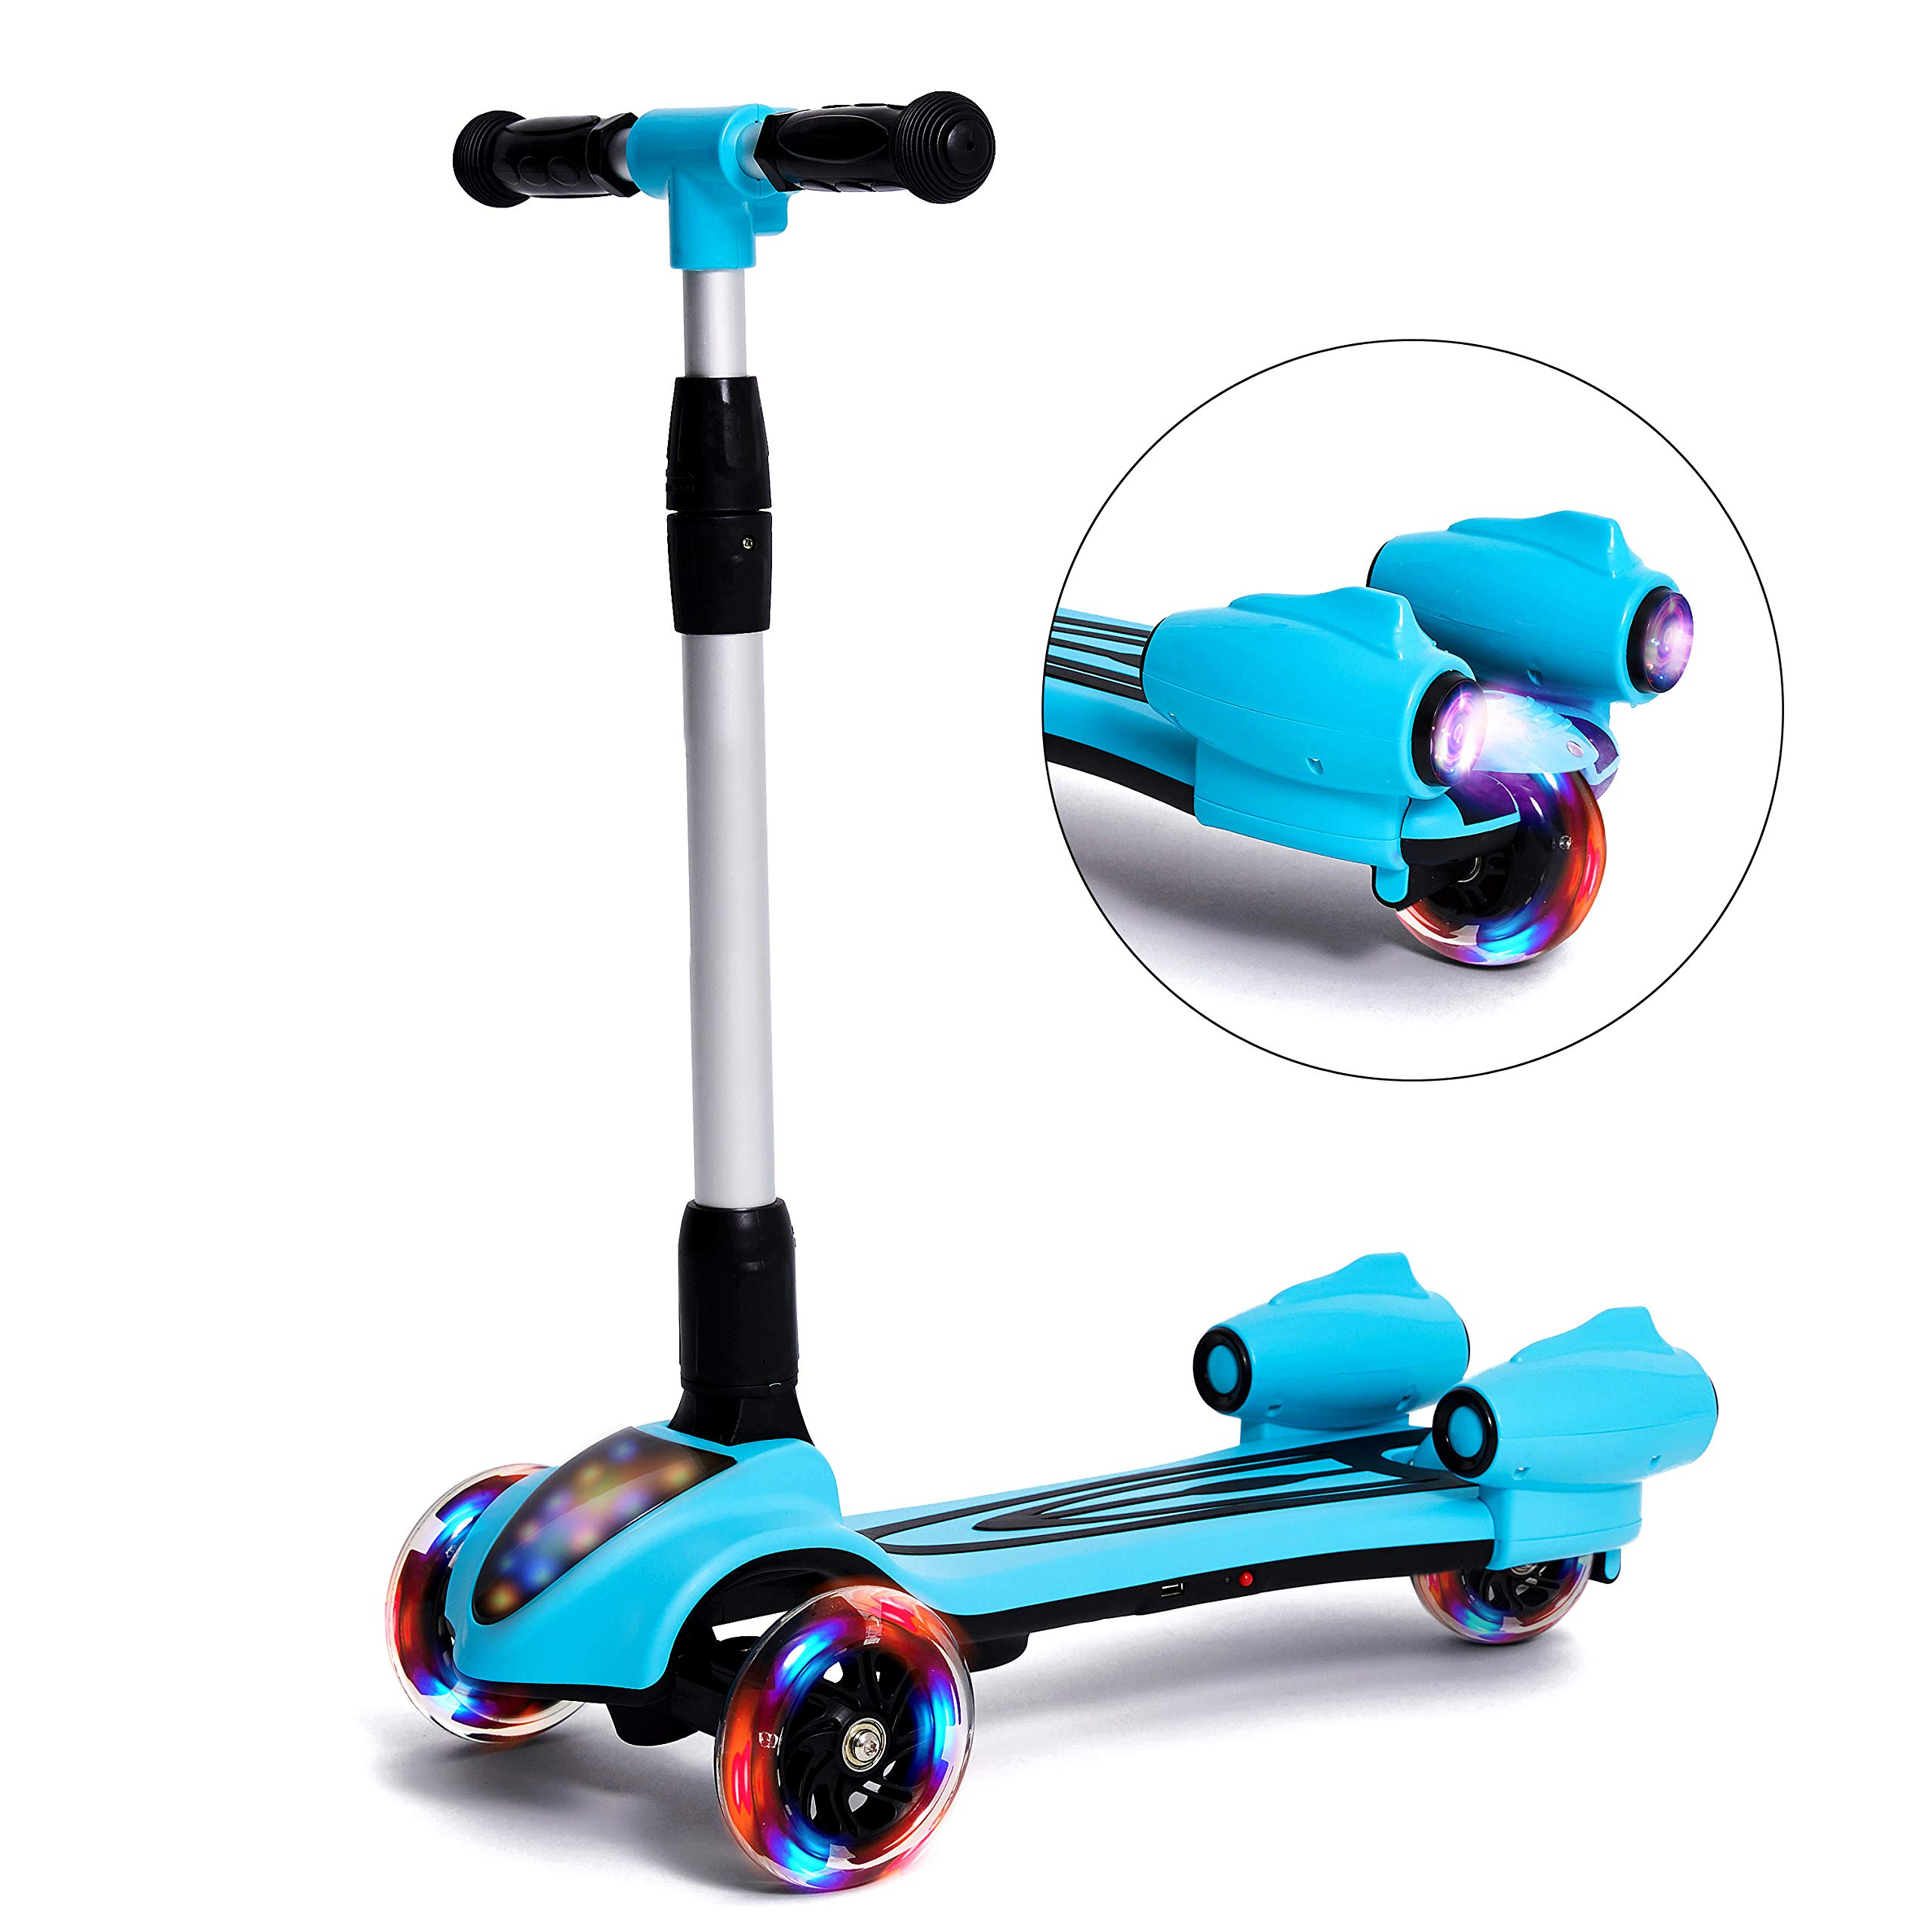 MammyGol Scooters for Kids 3 Wheel Kick Scooter,Folding LED Spray Jet Scooter with Adjustable Height,Flashing PU Wheels and Lean to Steer,Best Gifts for Children Age 3-8 Years Old Blue by MammyGol